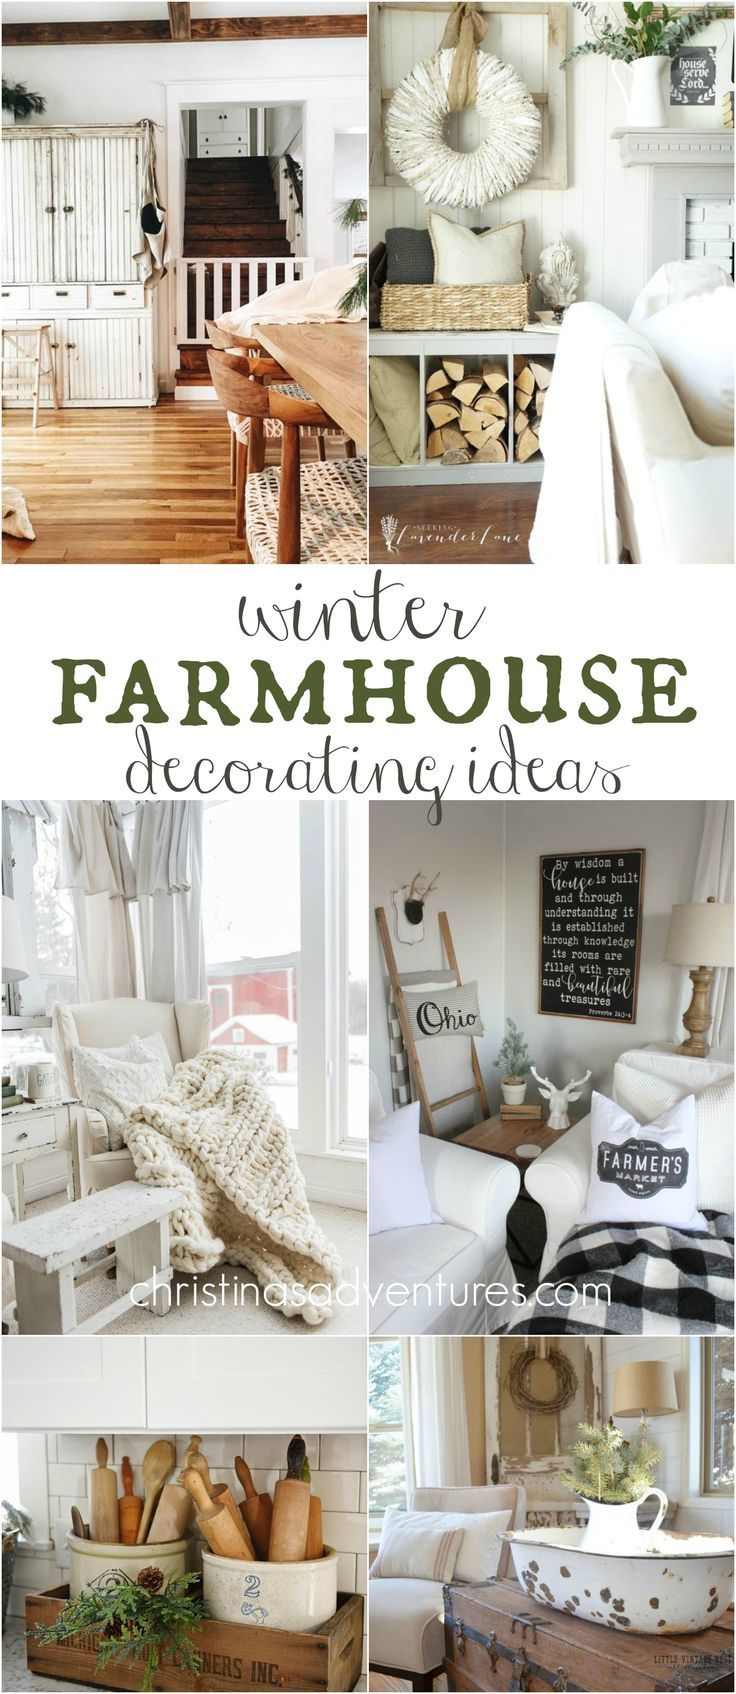 Winter Farmhouse Decorating Ideas Gallery